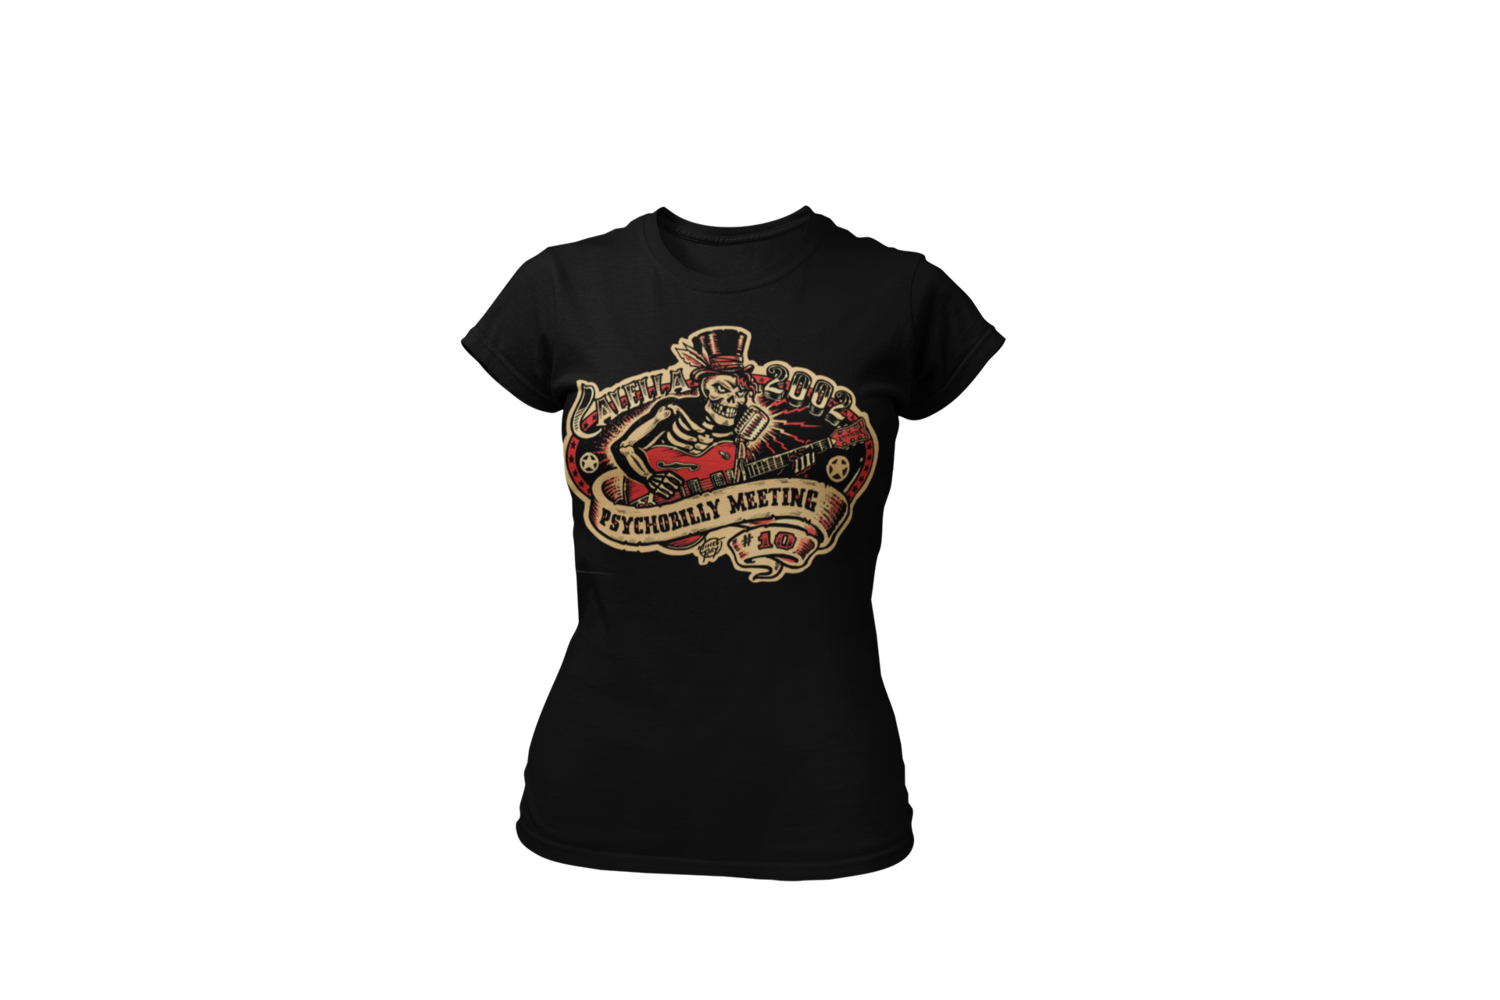 PSYCHOBILLY MEETING 2002 T-SHIRT WOMAN BY VINCE RAY